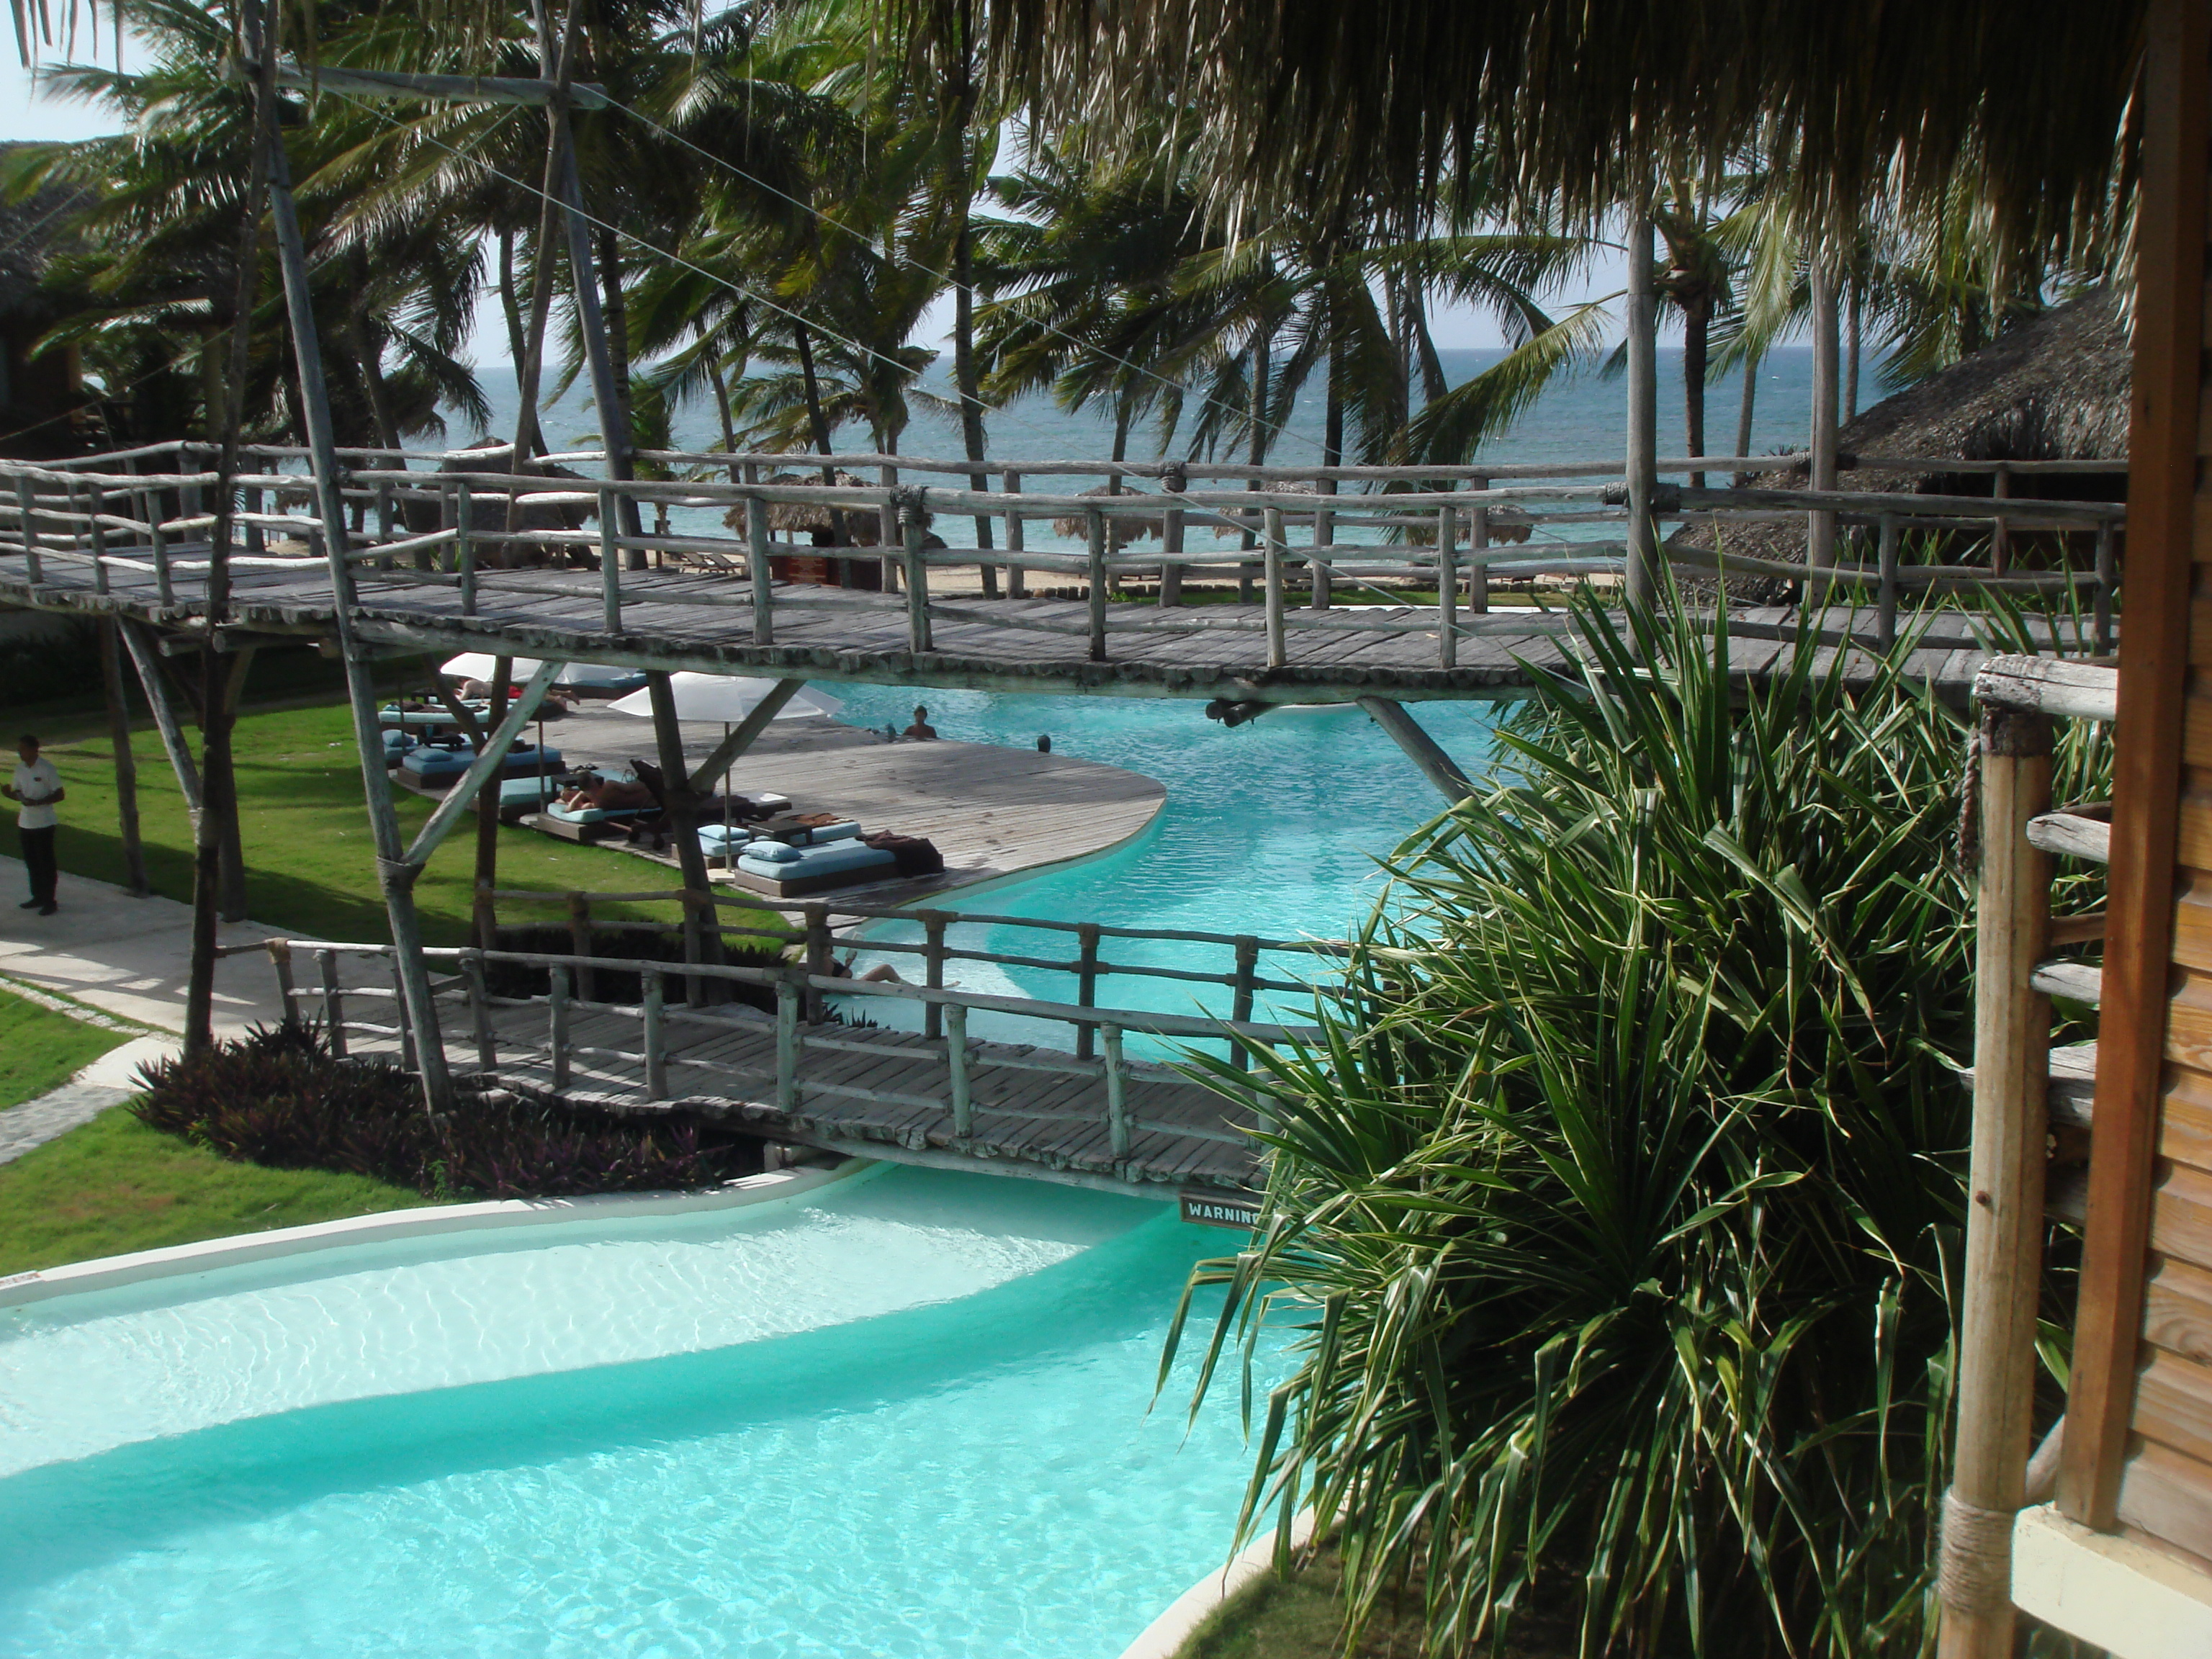 seminyakicon besides Exotic Tropical Turtle Island Sale Australia furthermore Olas furthermore Kalalau Trail likewise Polly Pocket Toys And Playsets. on small tropical pool